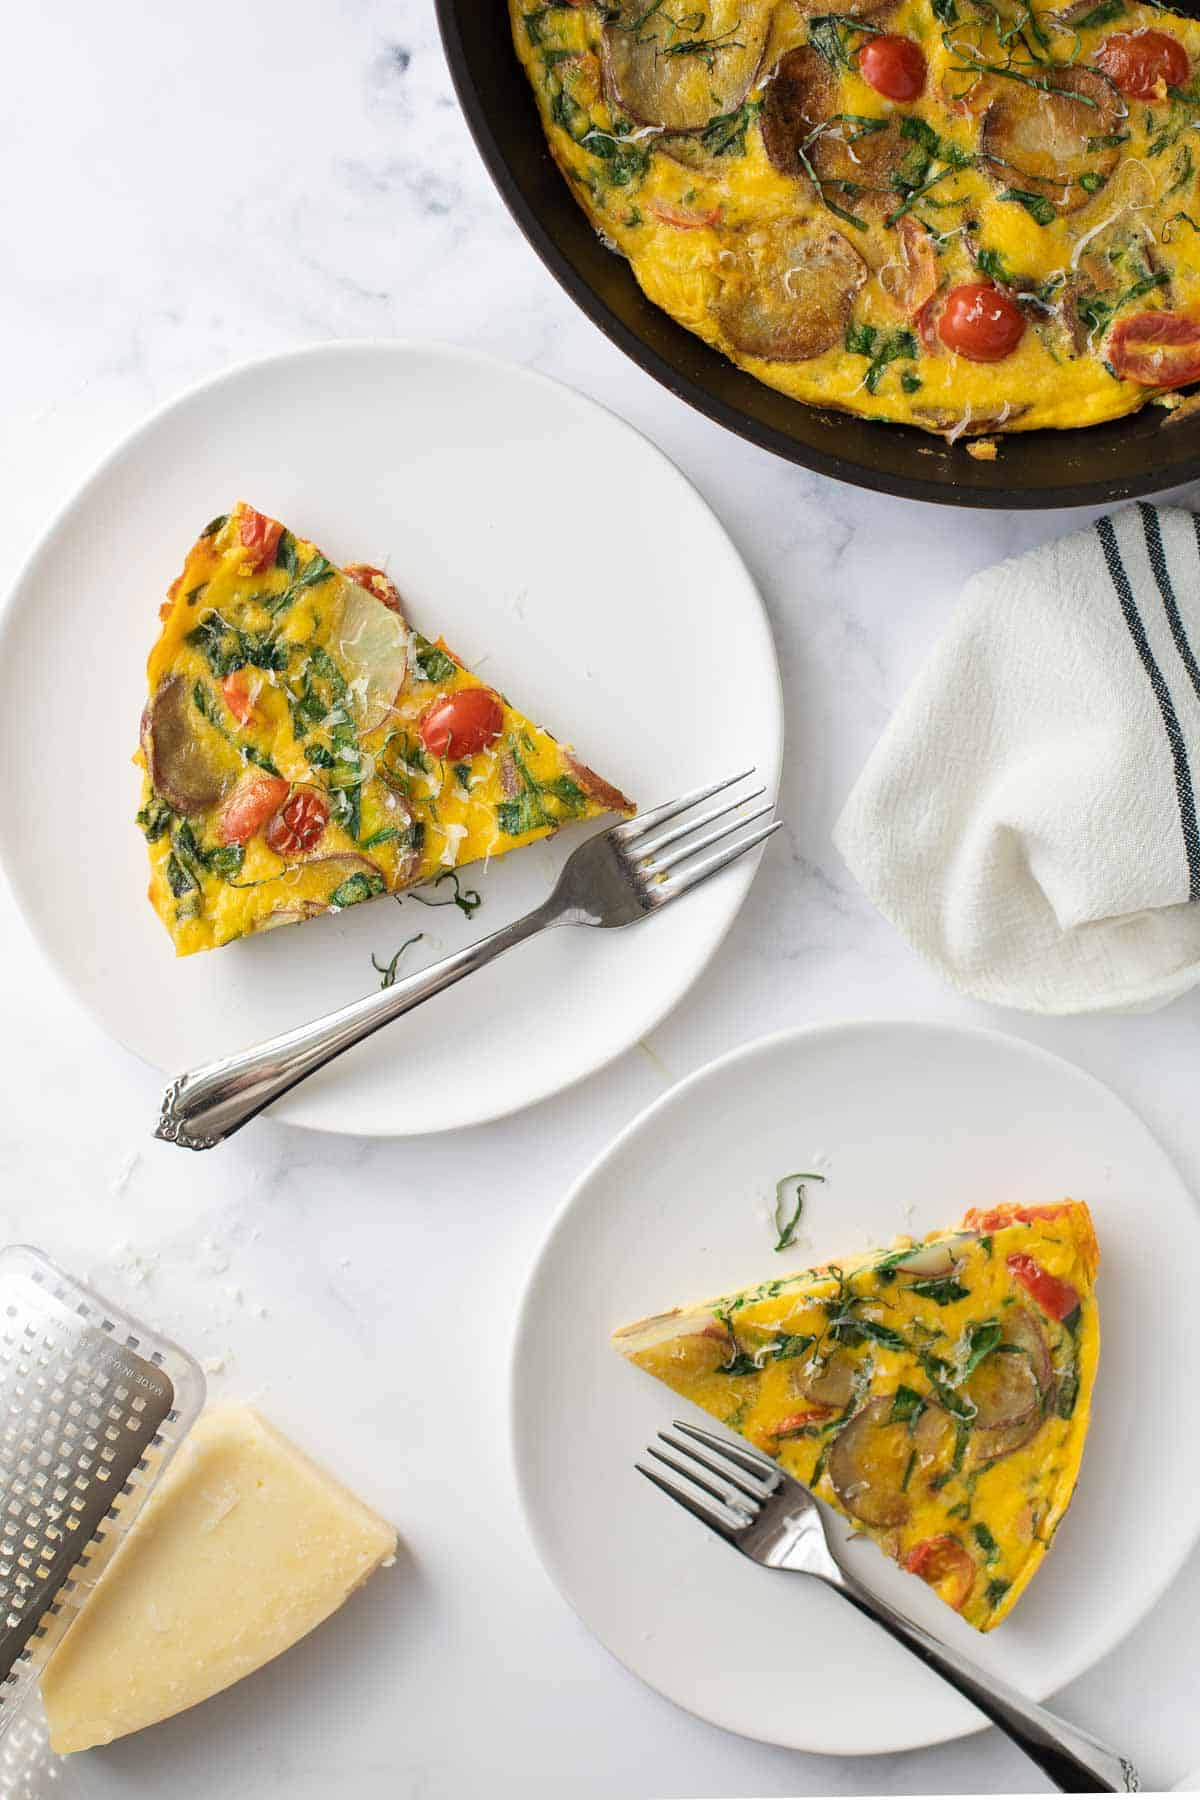 2 plated servings of tomato, spinach and potato frittata with cheese